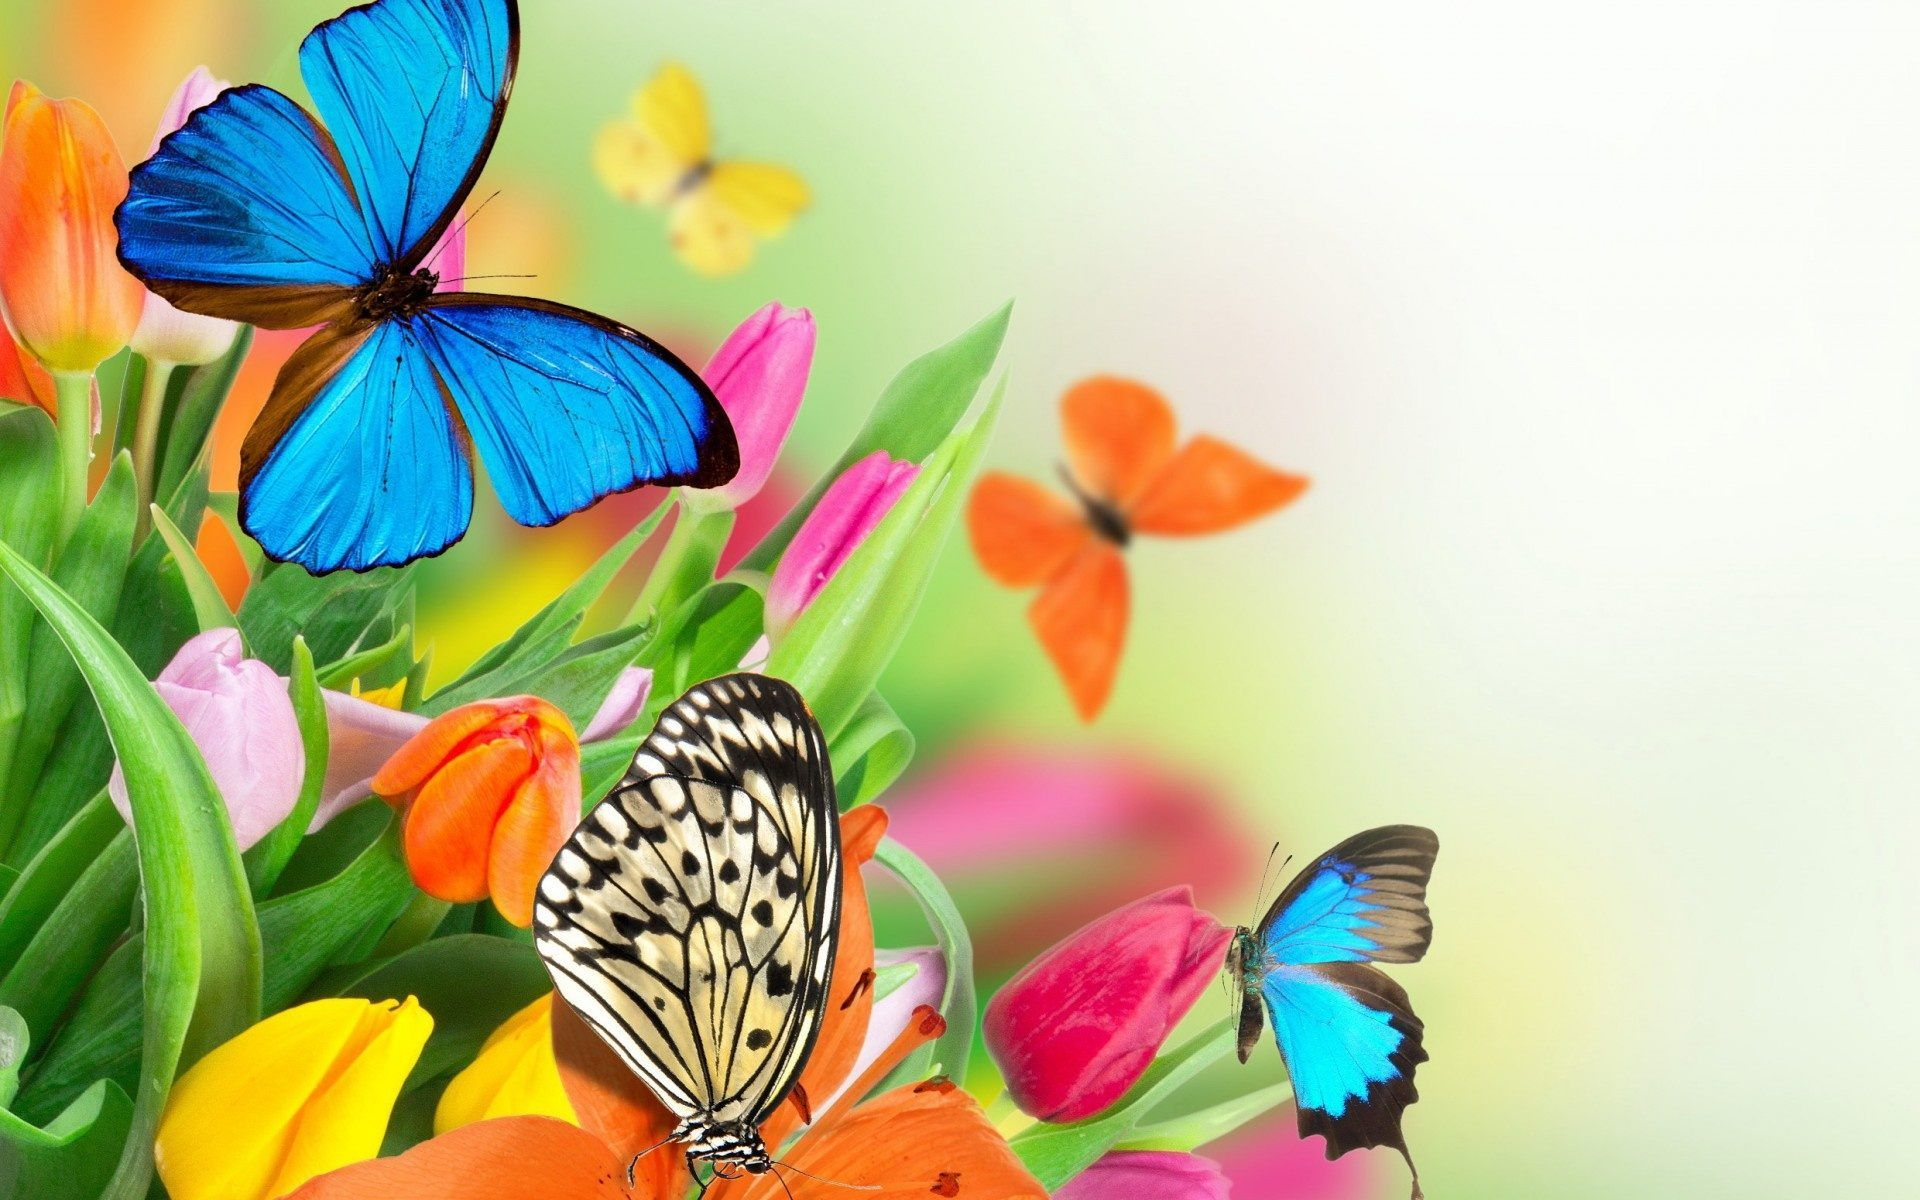 colorful butterfly on flower wallpaper - Download Hd colorful ...